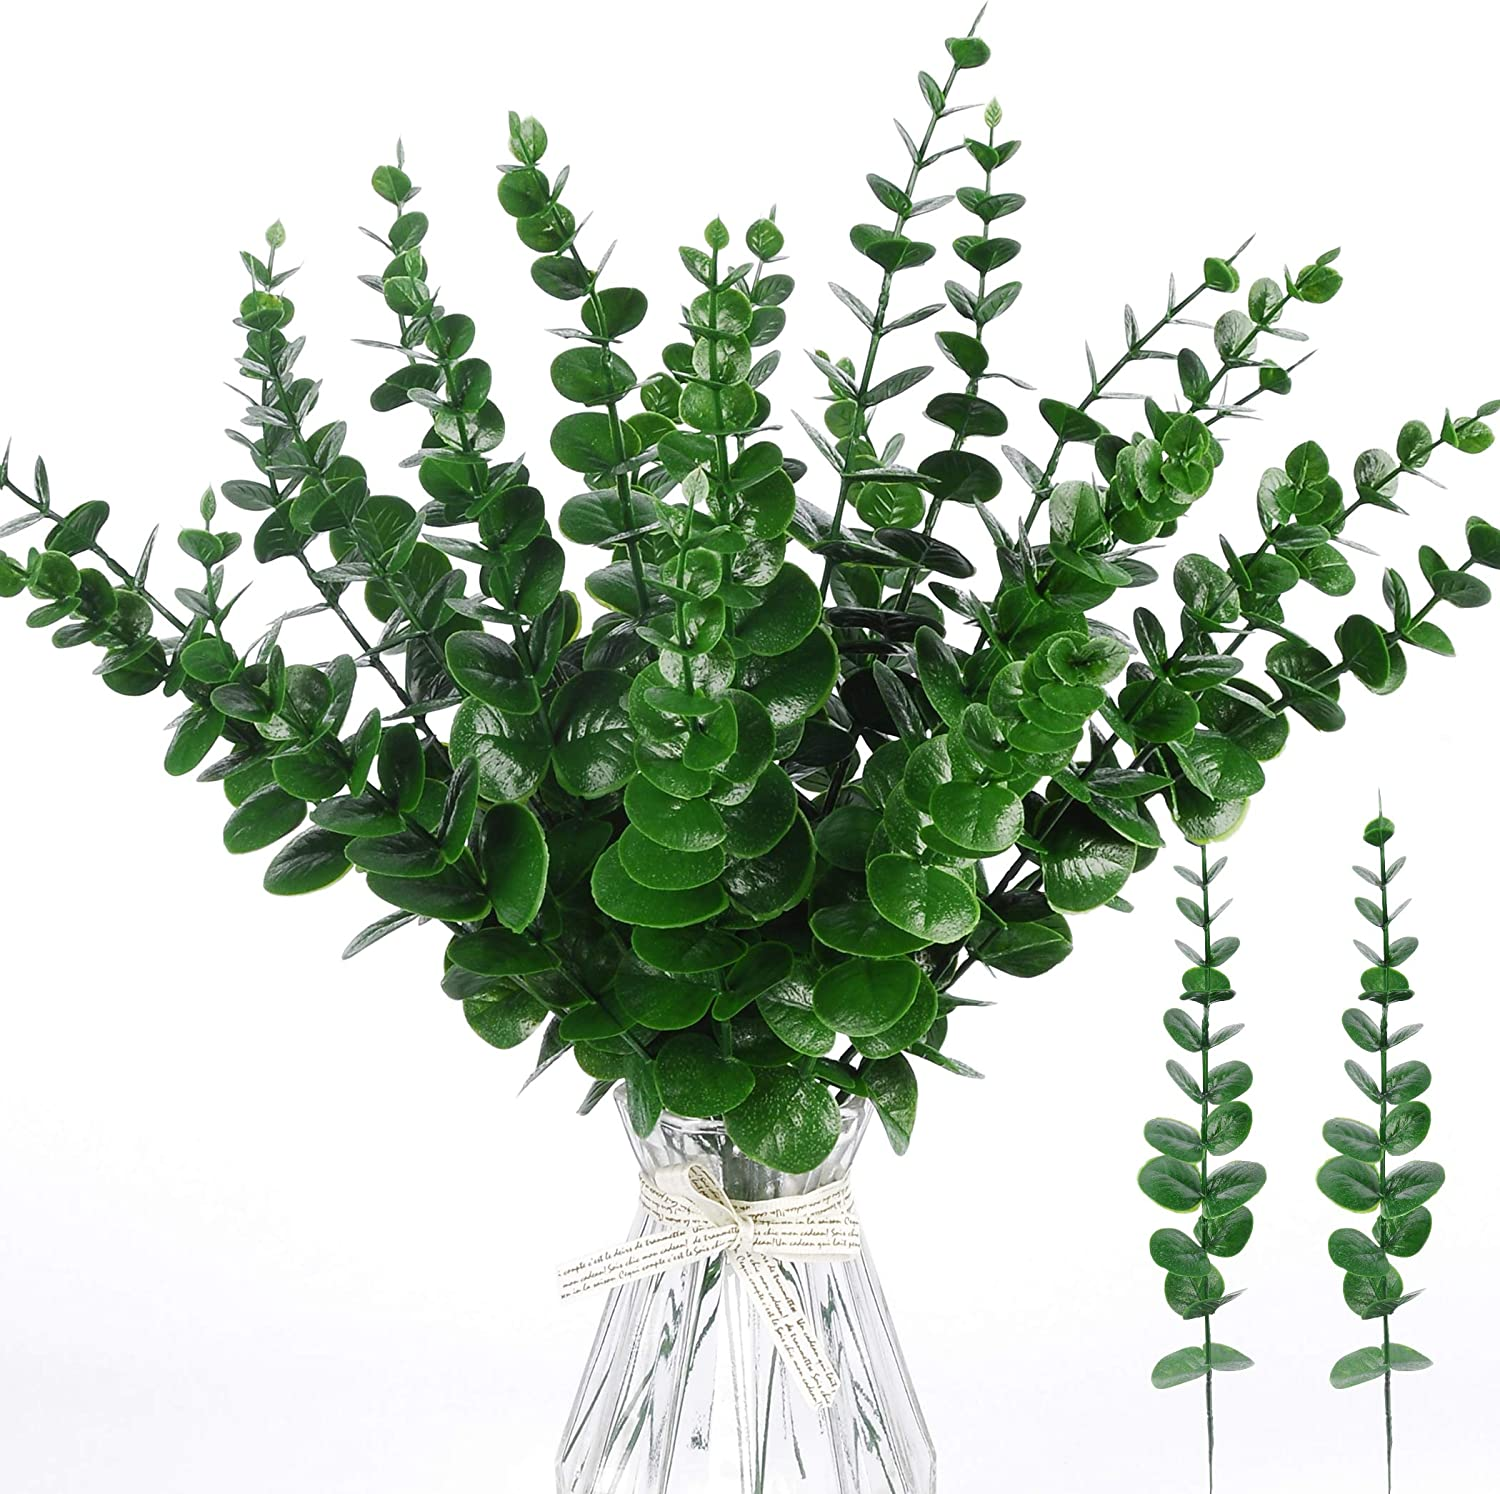 Miracliy 24 PCS Artificial Eucalyptus Stems Leaves Bulk, Faux Eucalyptus Greenery Stems for Vase Wedding Home Garland Decor